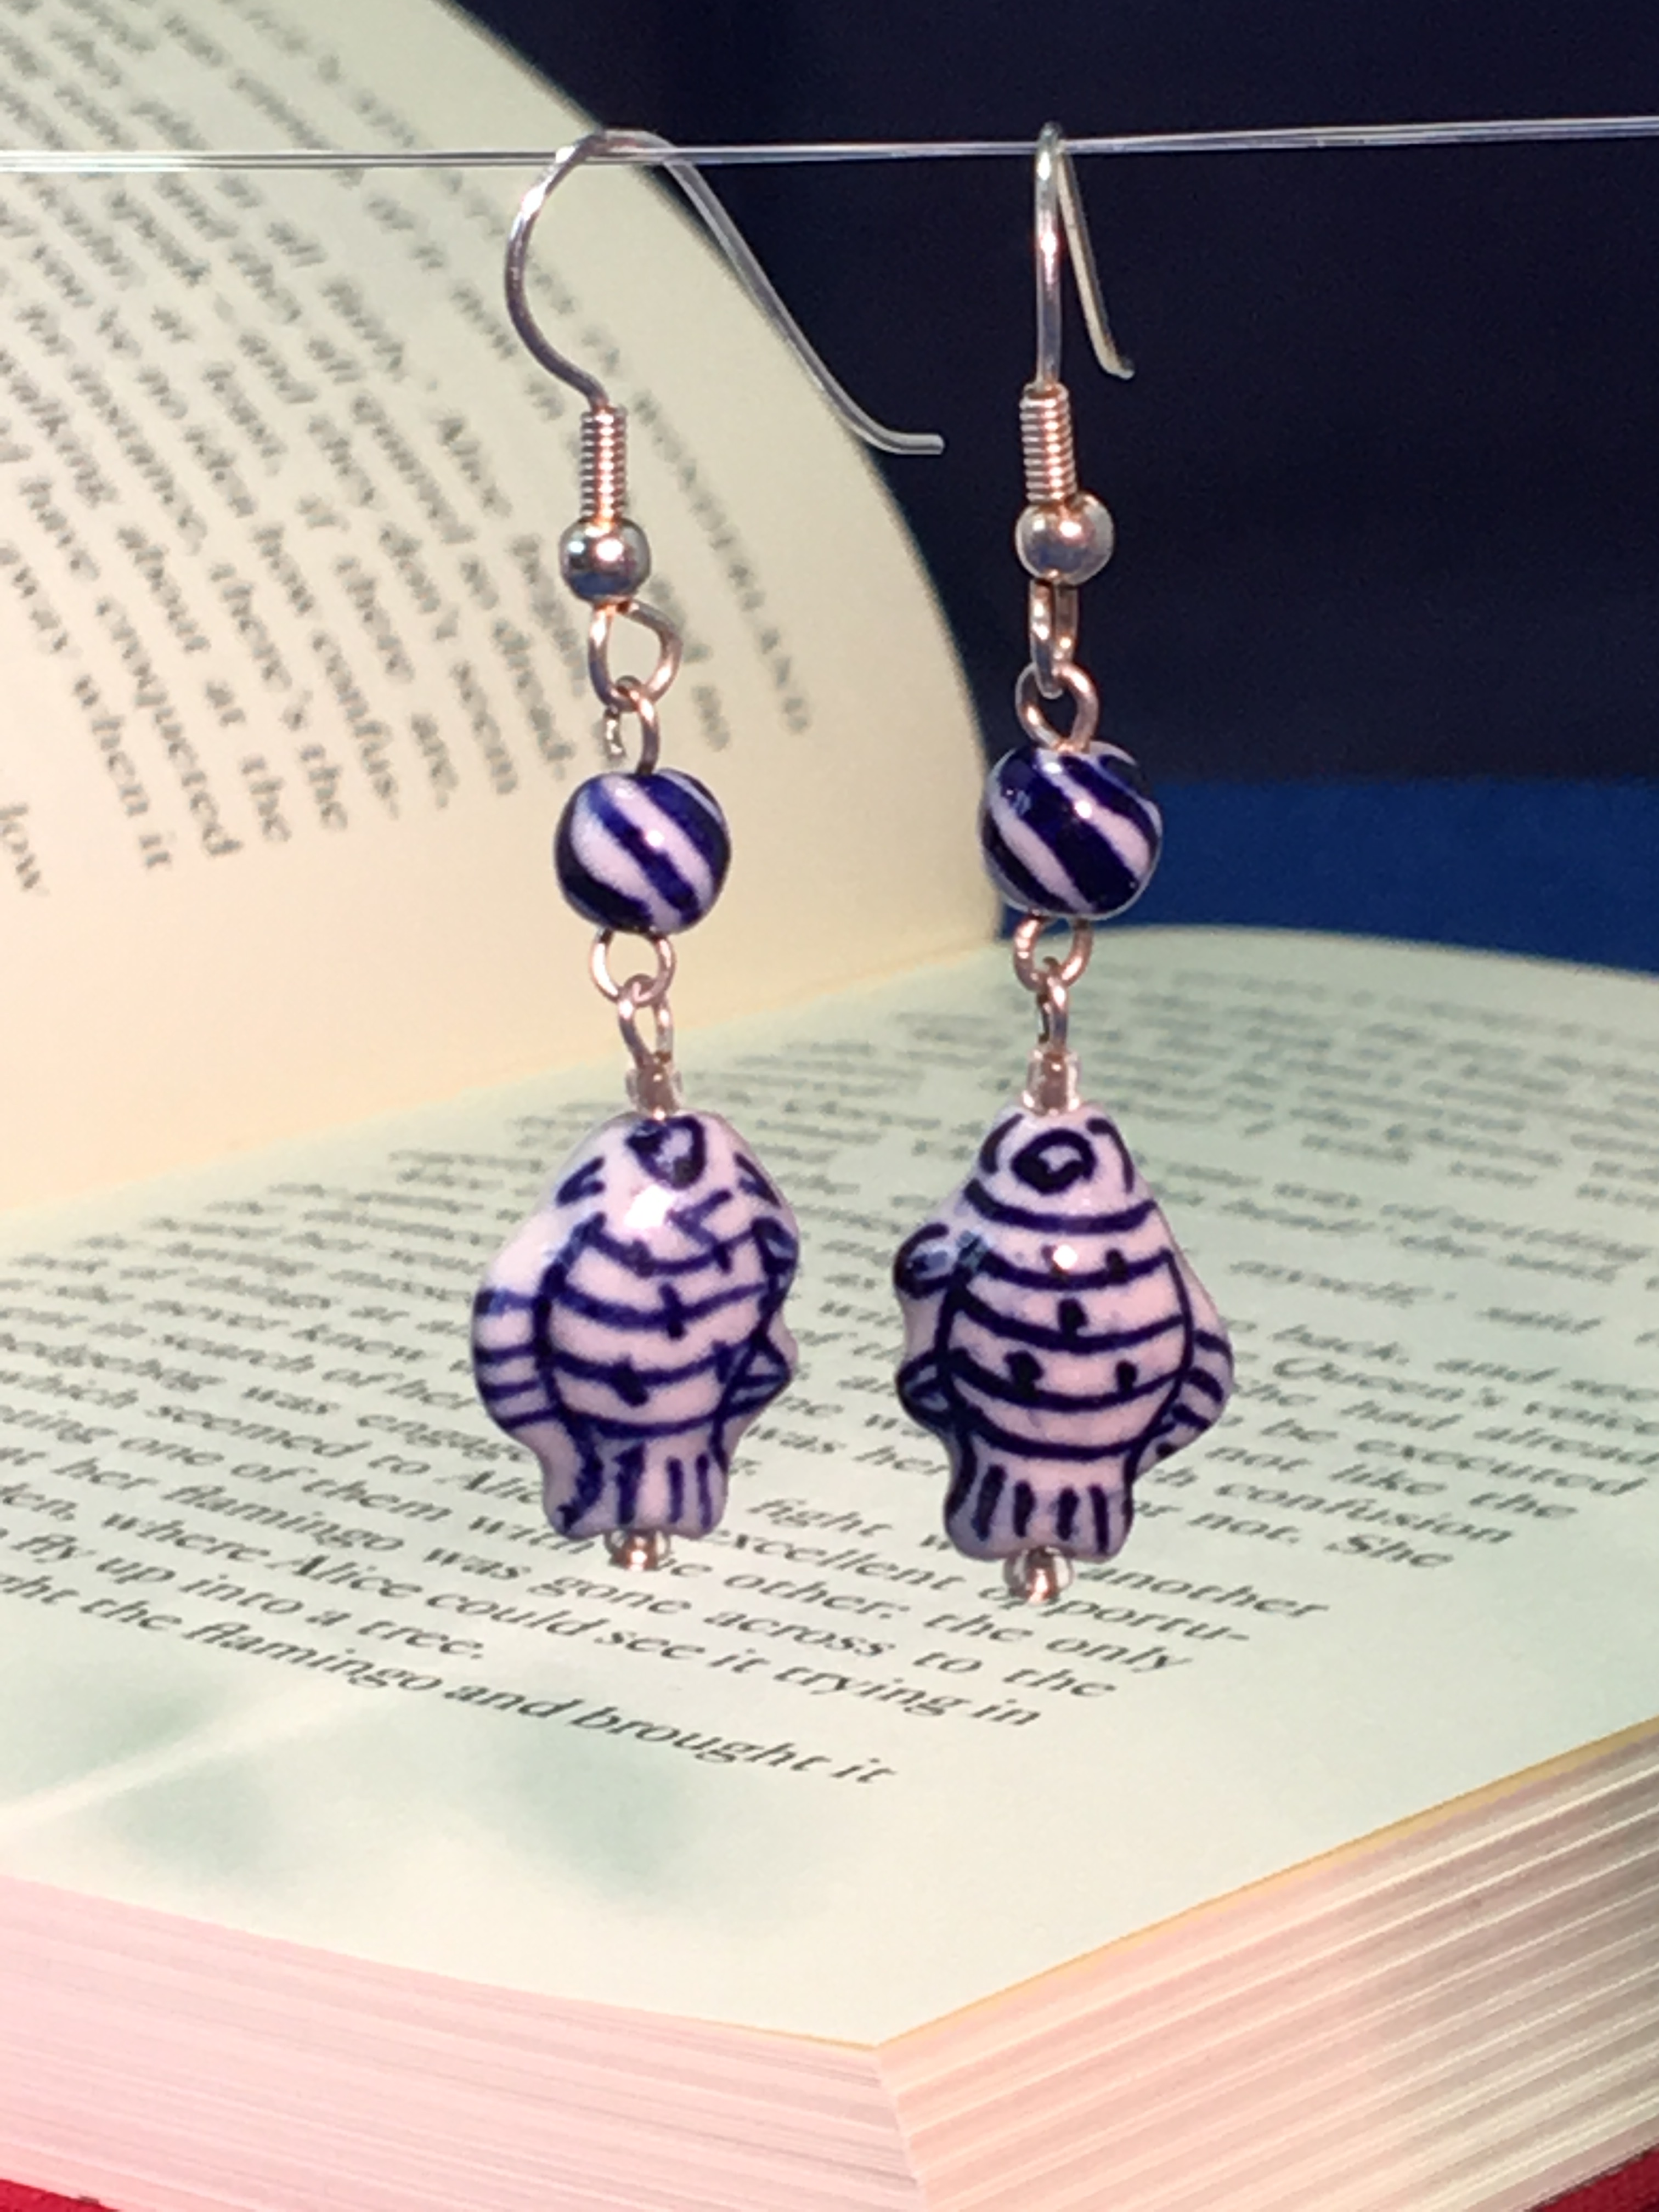 felicity fish earrings